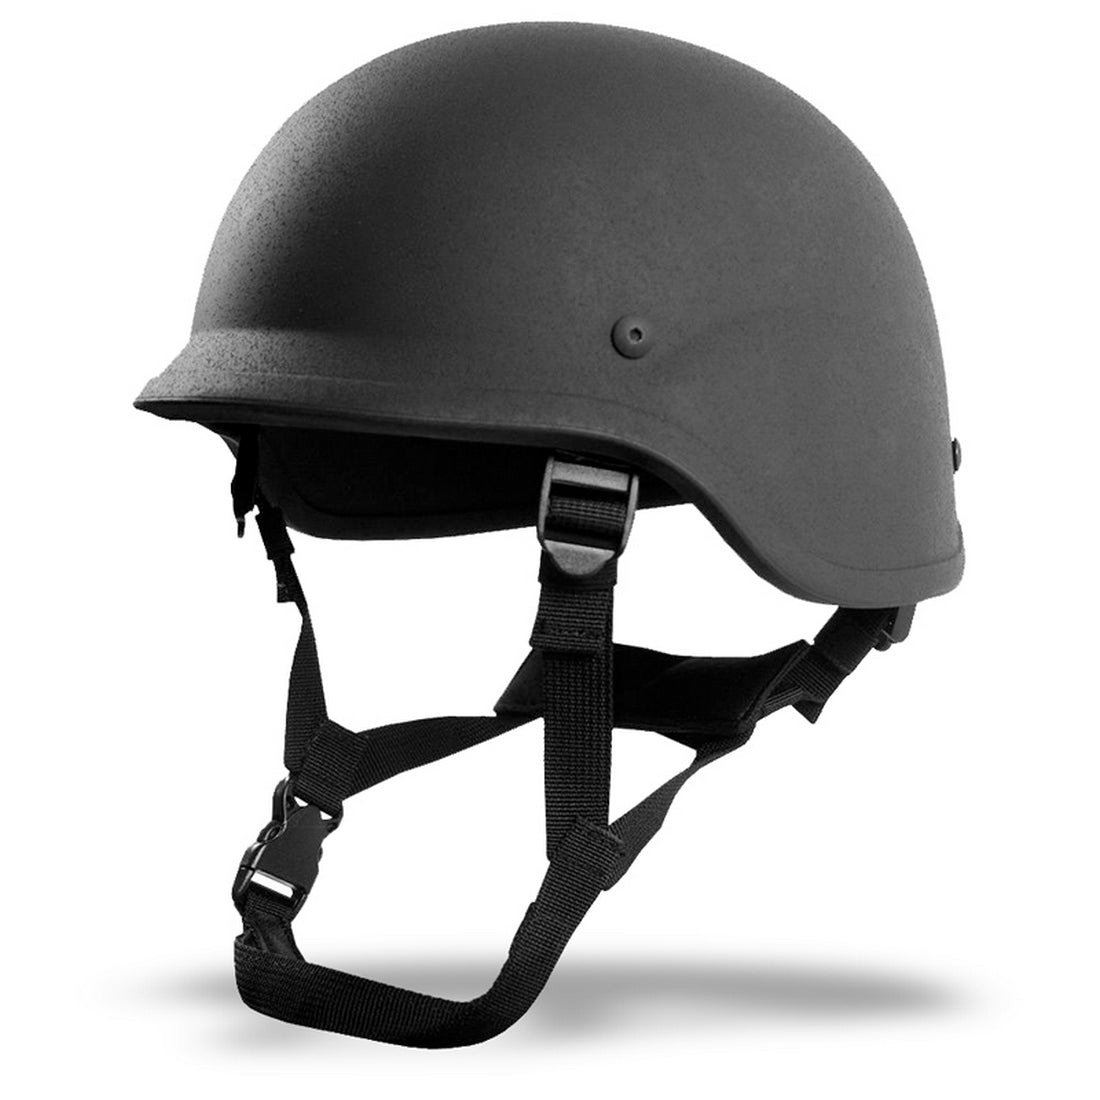 PASGT Helmet NIJ Level IIIA